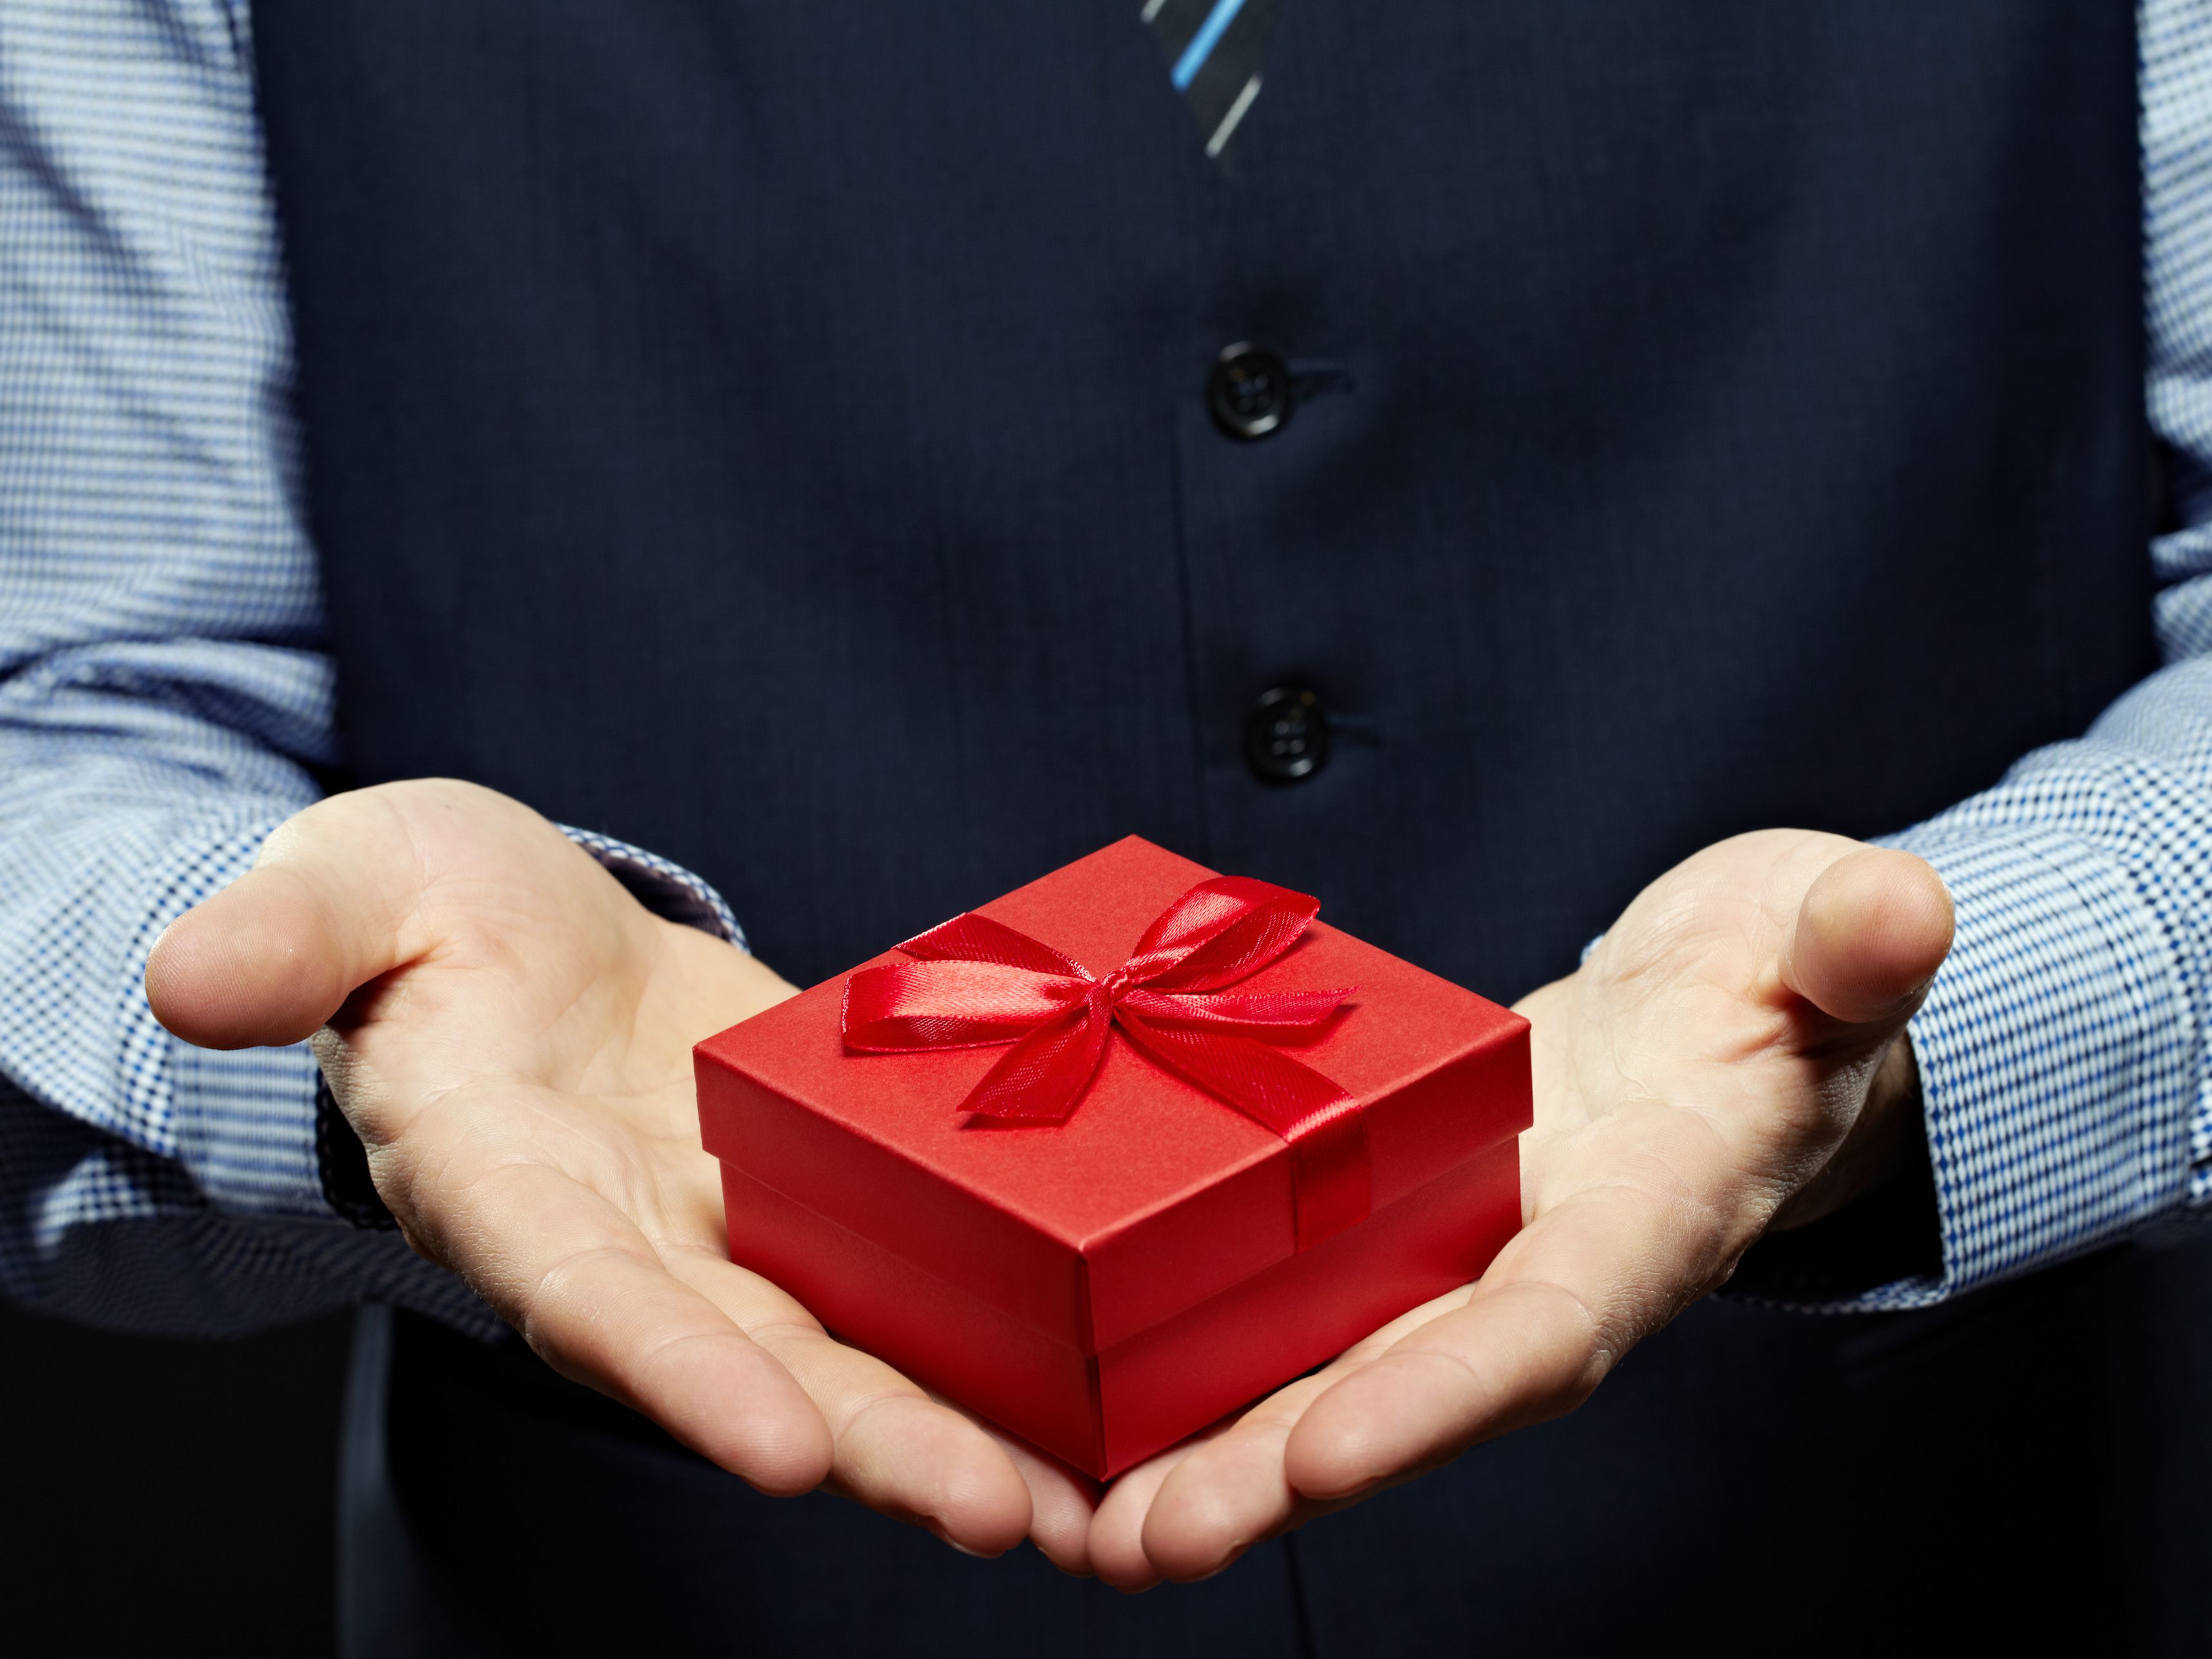 Christmas Vacation Boss Gift.How Much Should I Spend On A Gift For My Boss